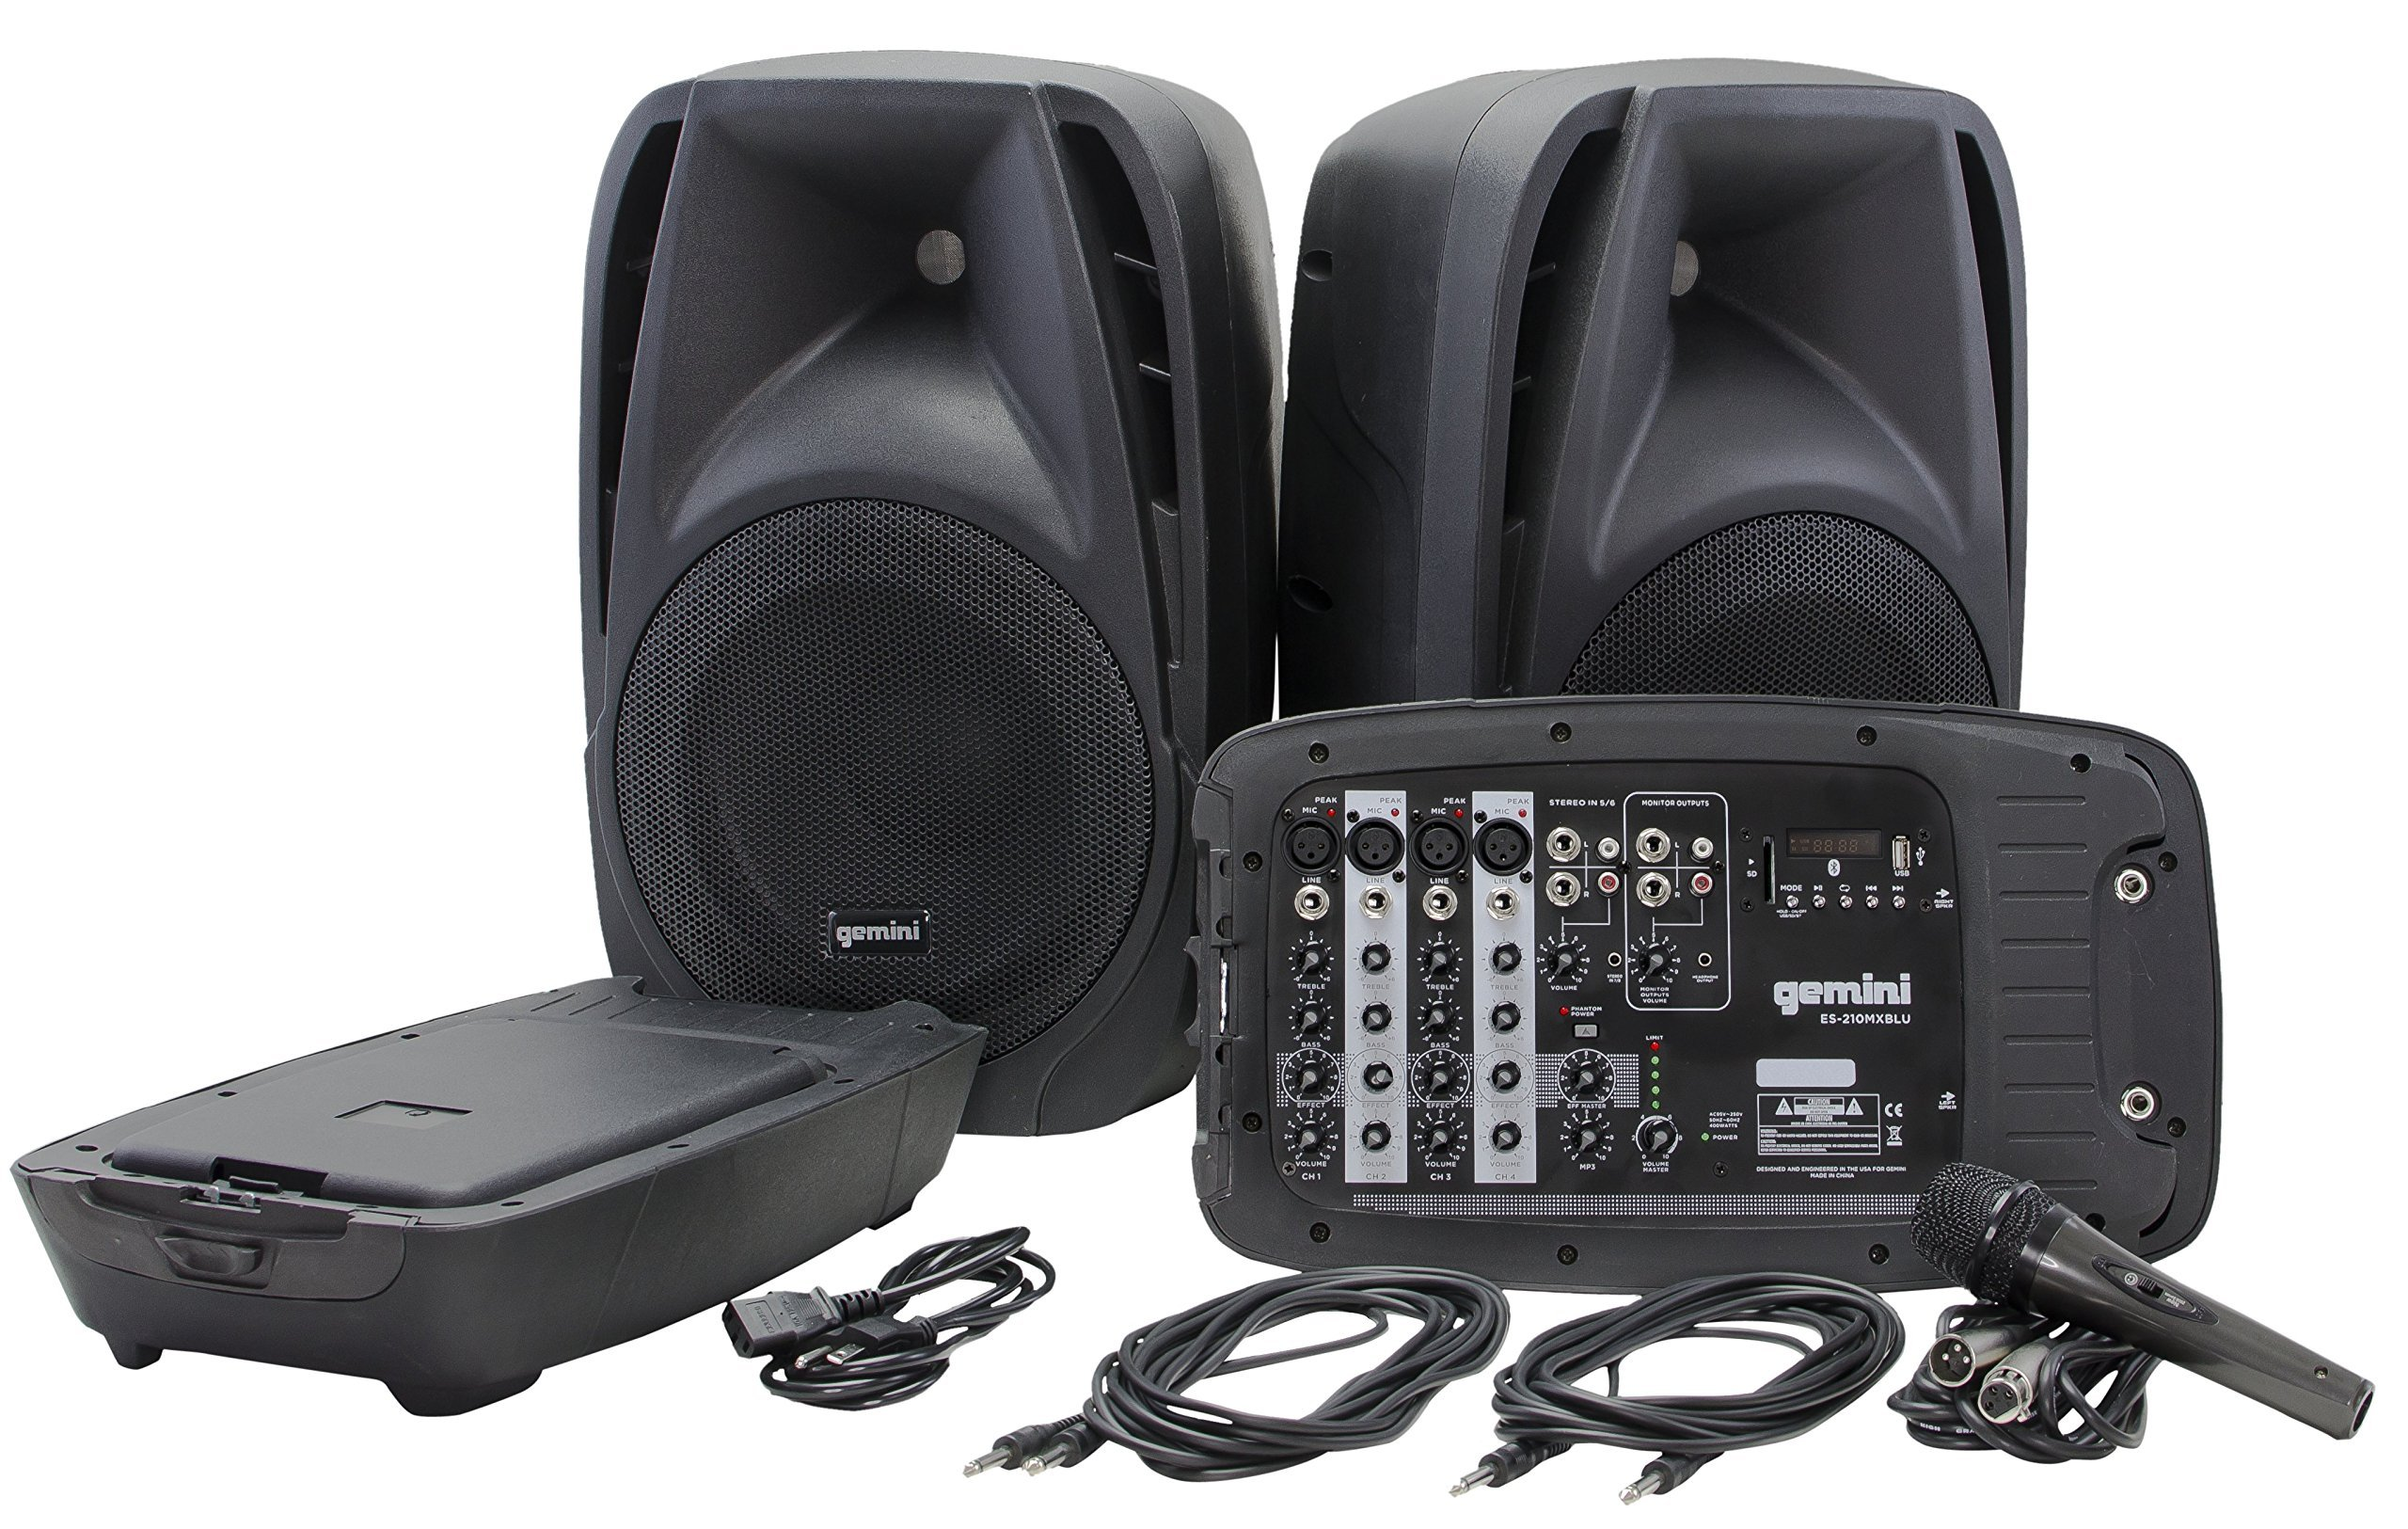 Gemini ES Series ES-210MXBLU Professional Audio Portable PA System with Two 10'' Passive Speakers and Microphone Included, 8 Channel Mixer, 4 Line/Mic Inputs